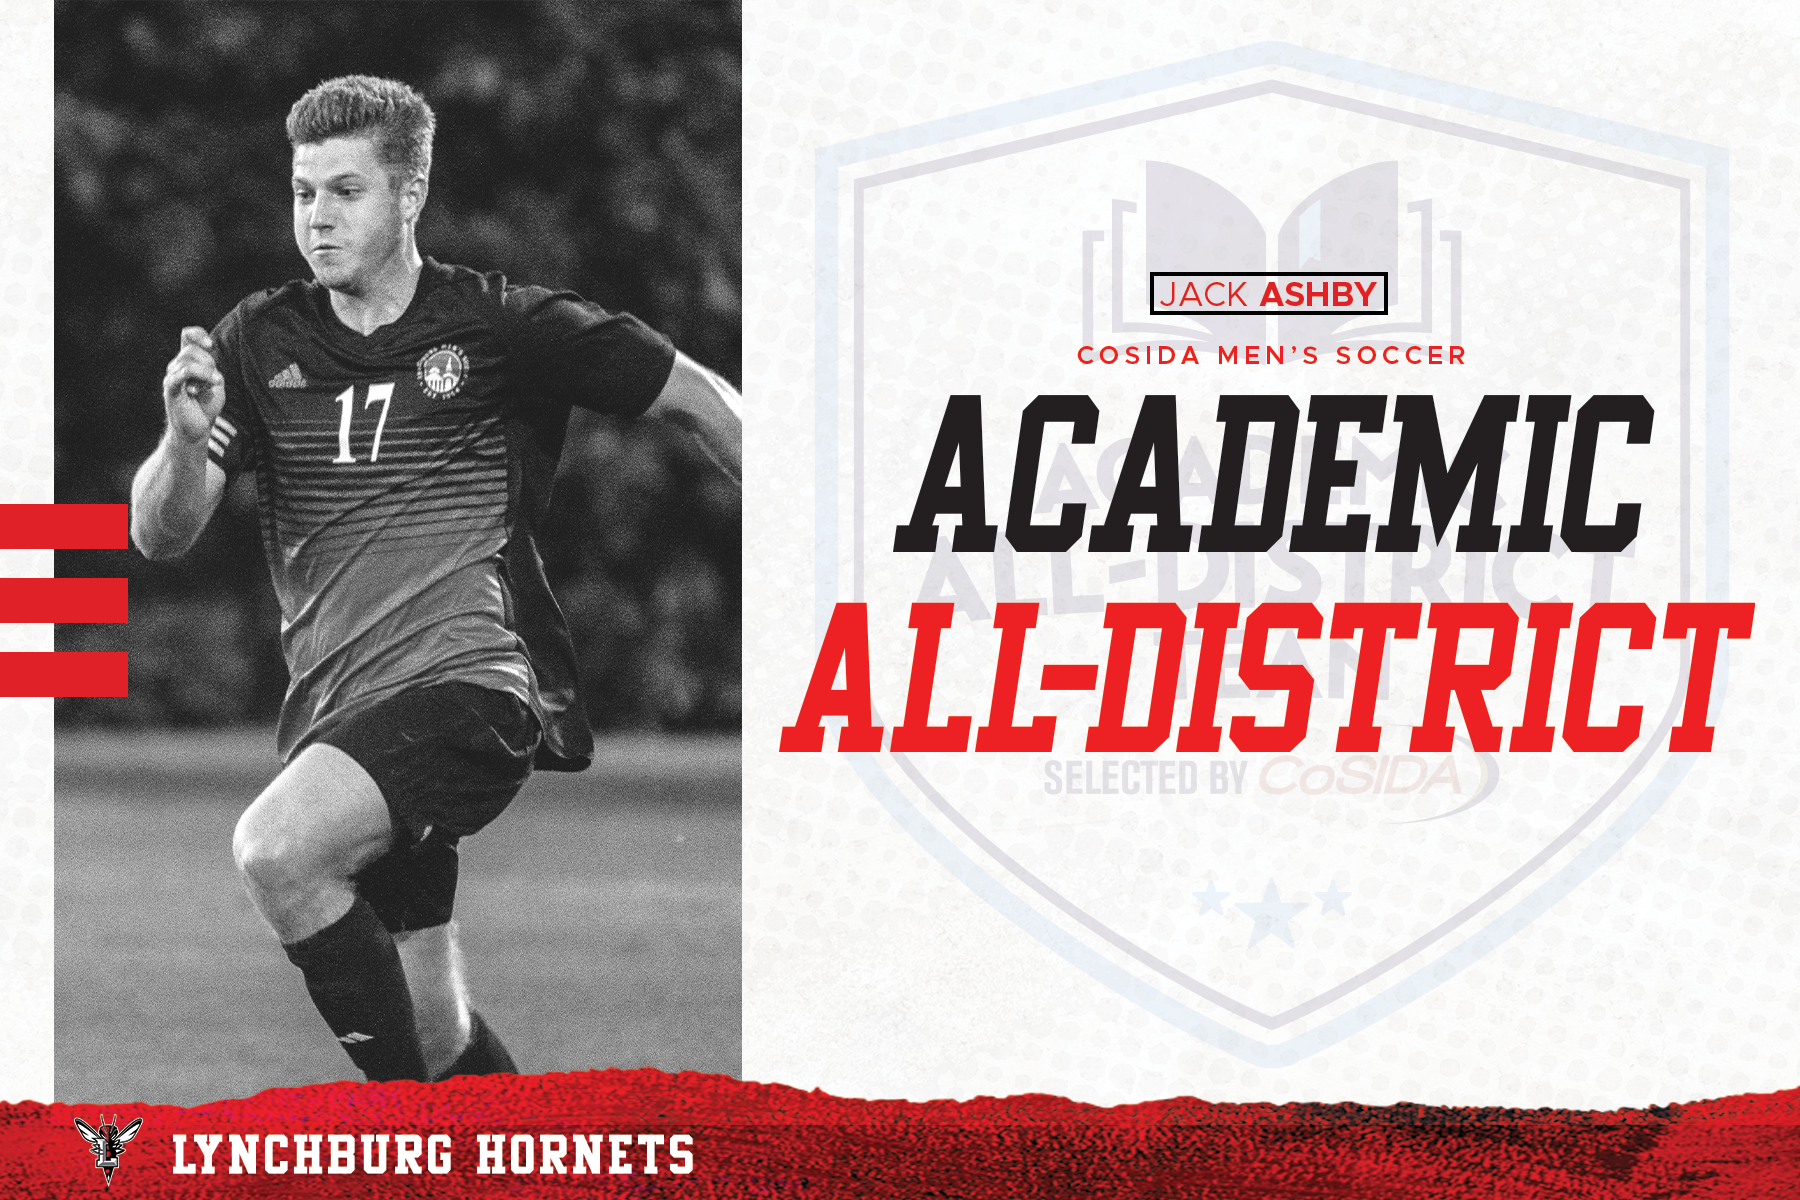 White and red Academic All-District graphic with Ashby playing soccer image in grayscale at left